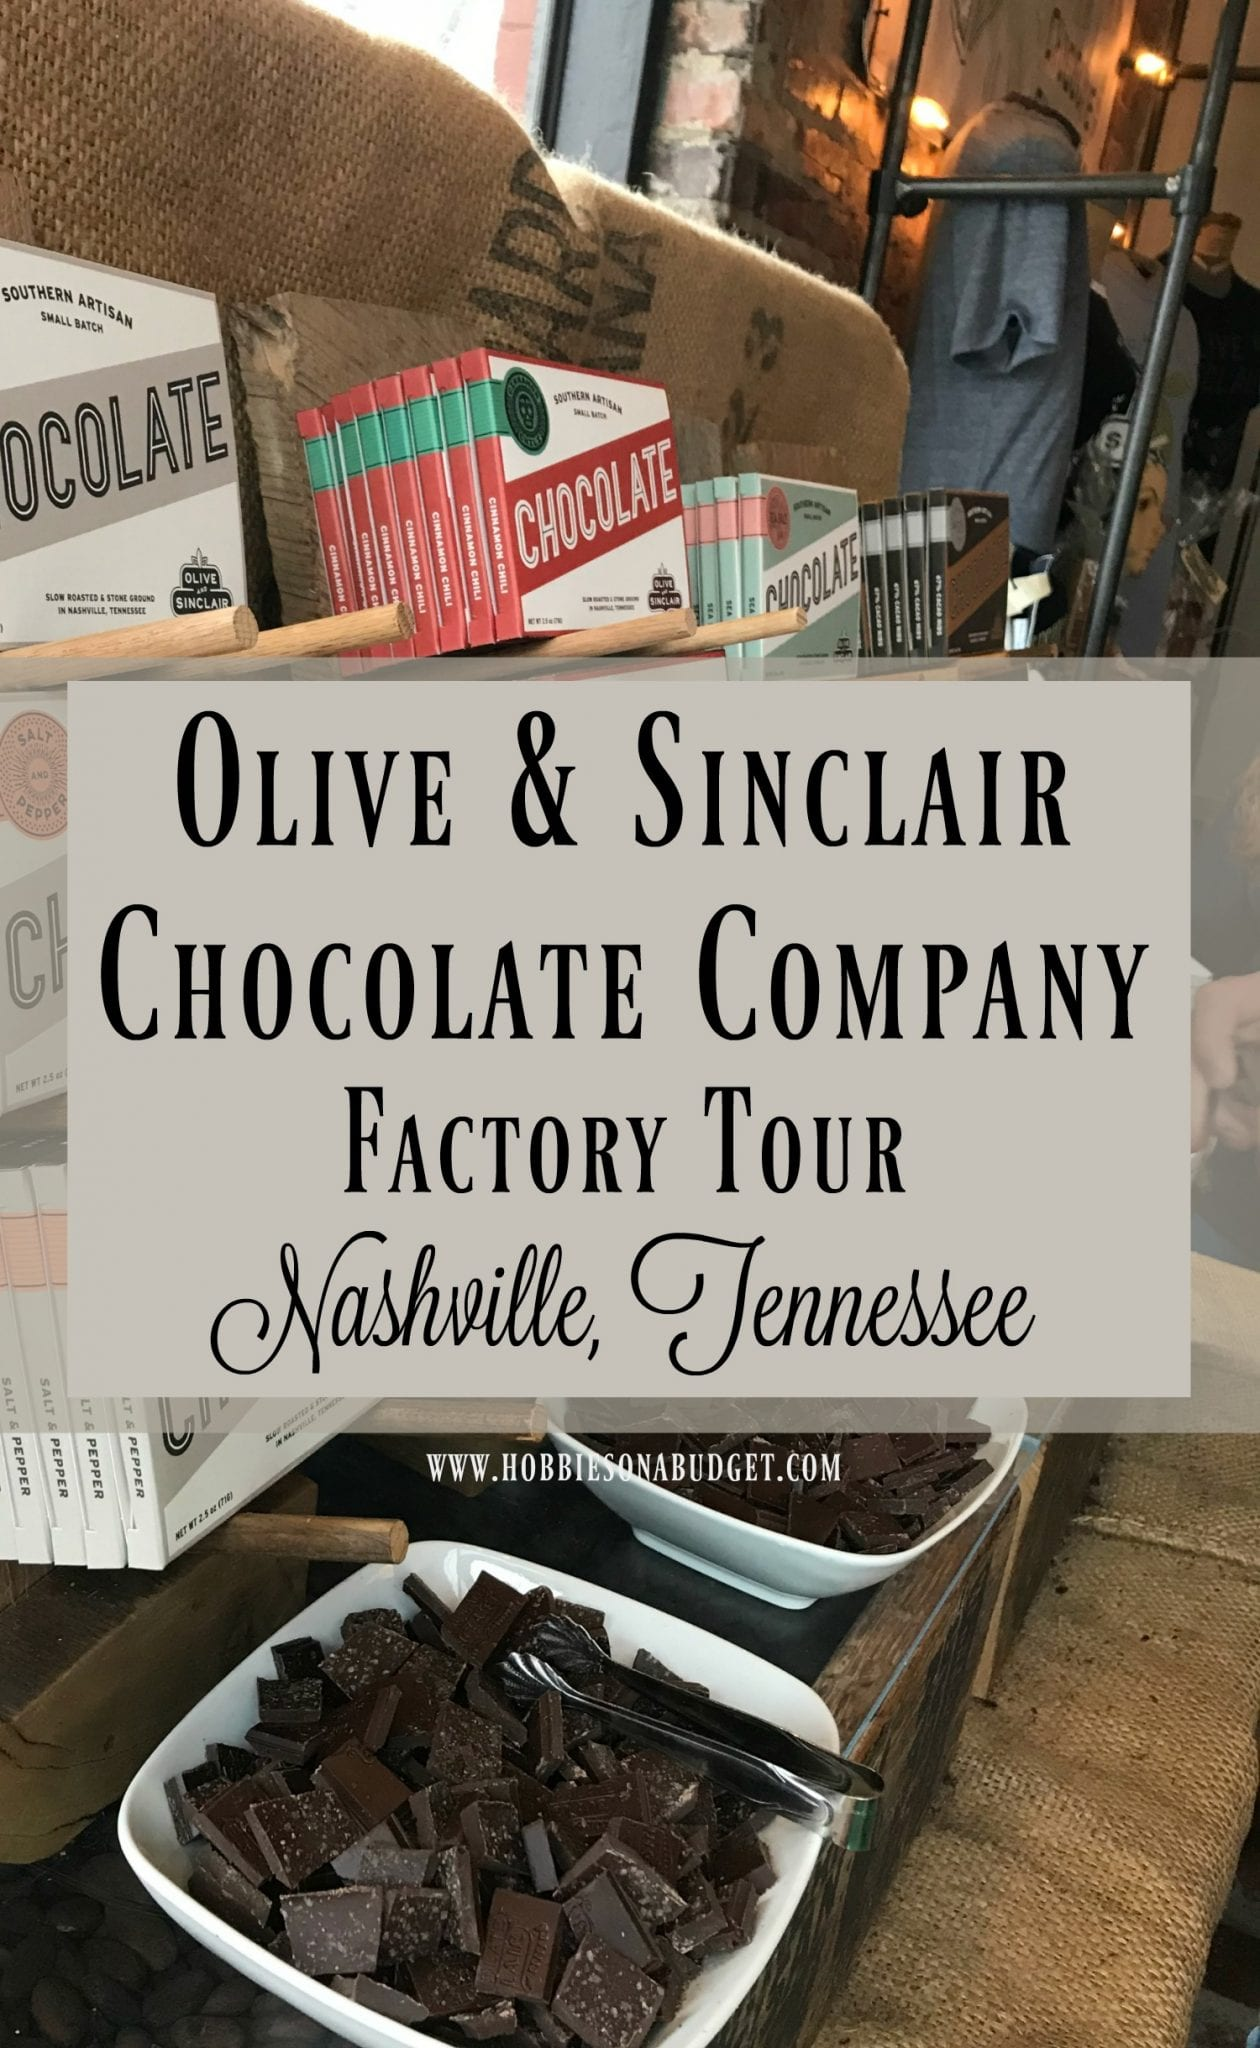 Olive & Sinclair Chocolate Company Factory Tour